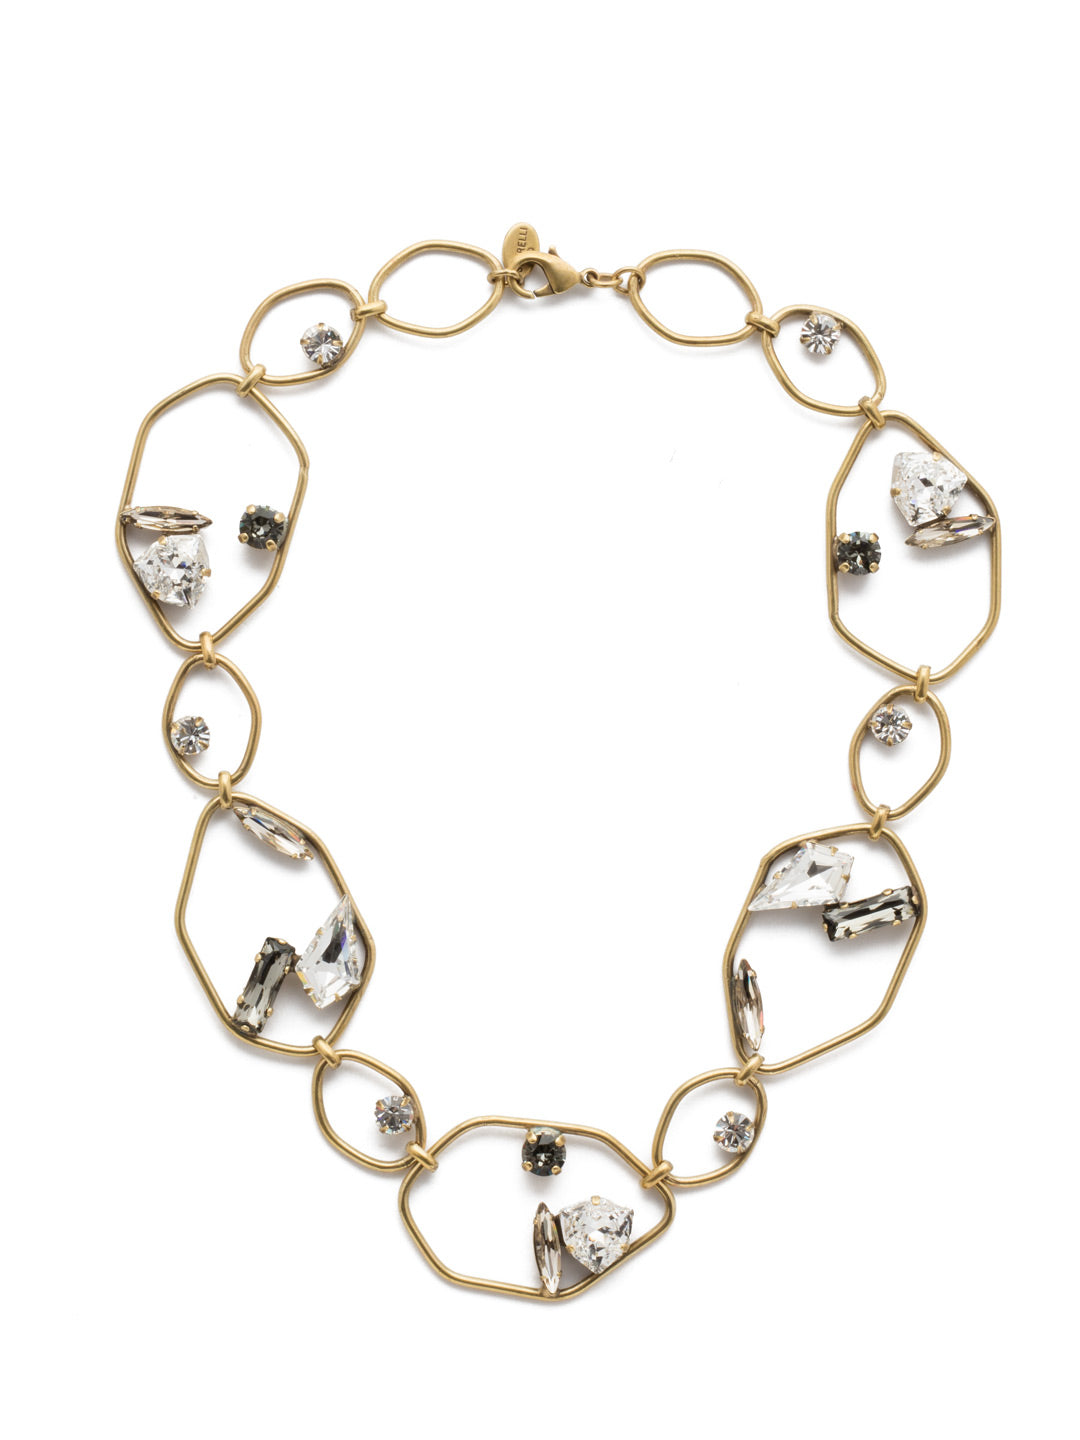 Presley Collar Necklace - NEB28AGCRY